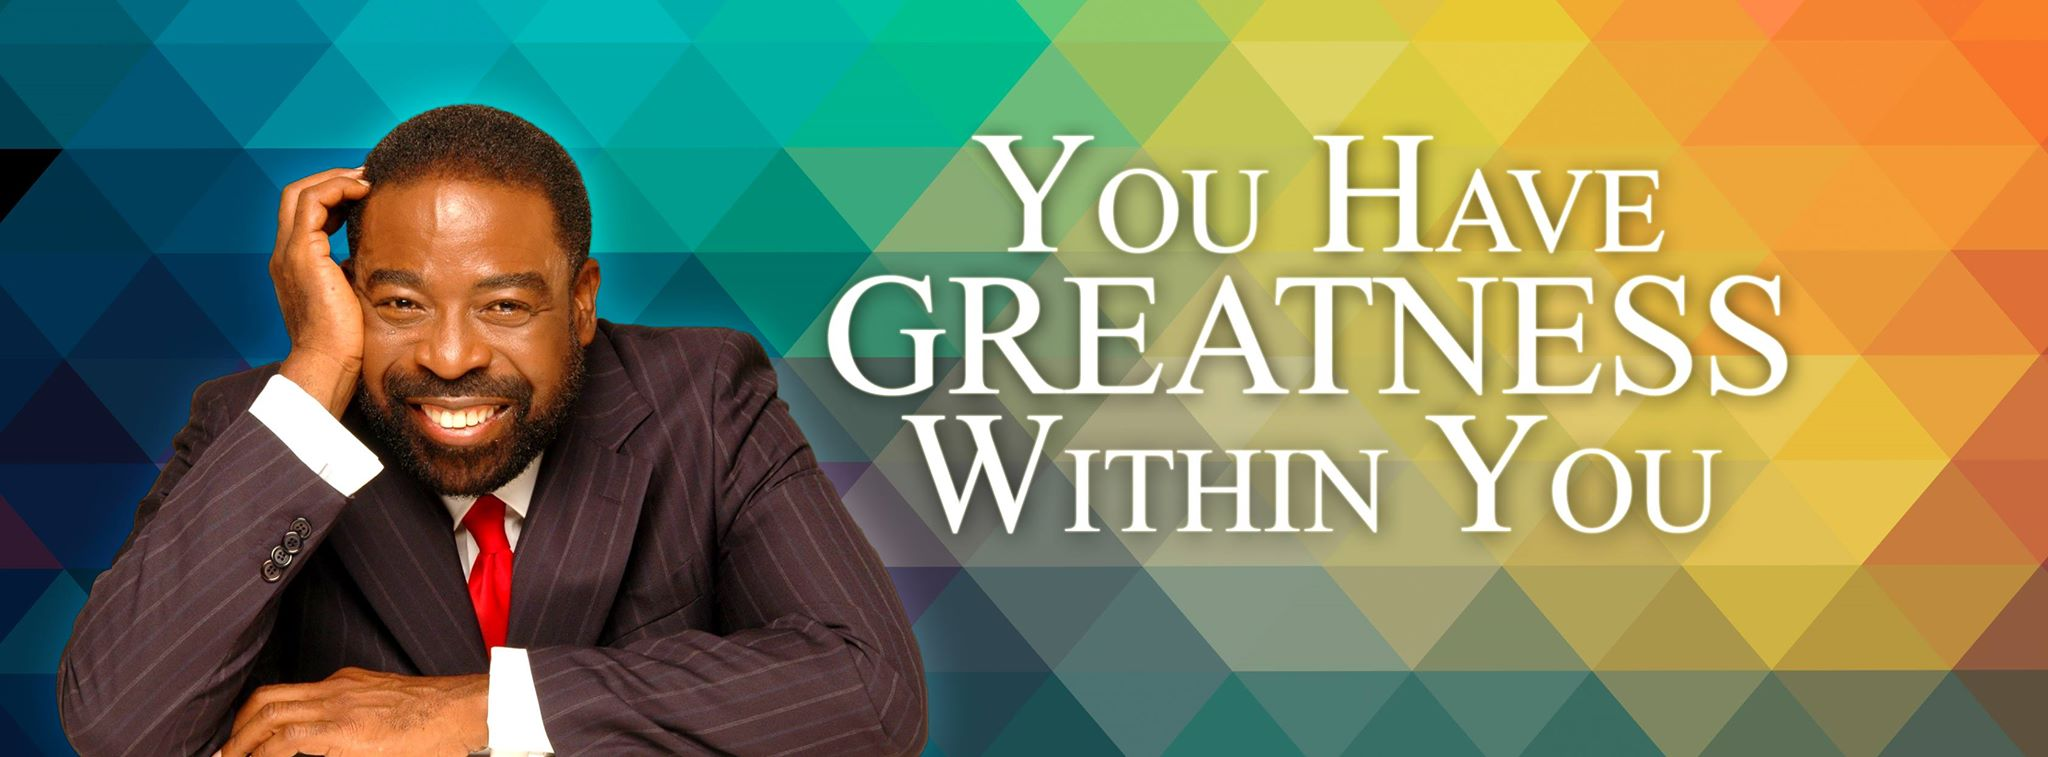 Motivating Les Brown Quotes